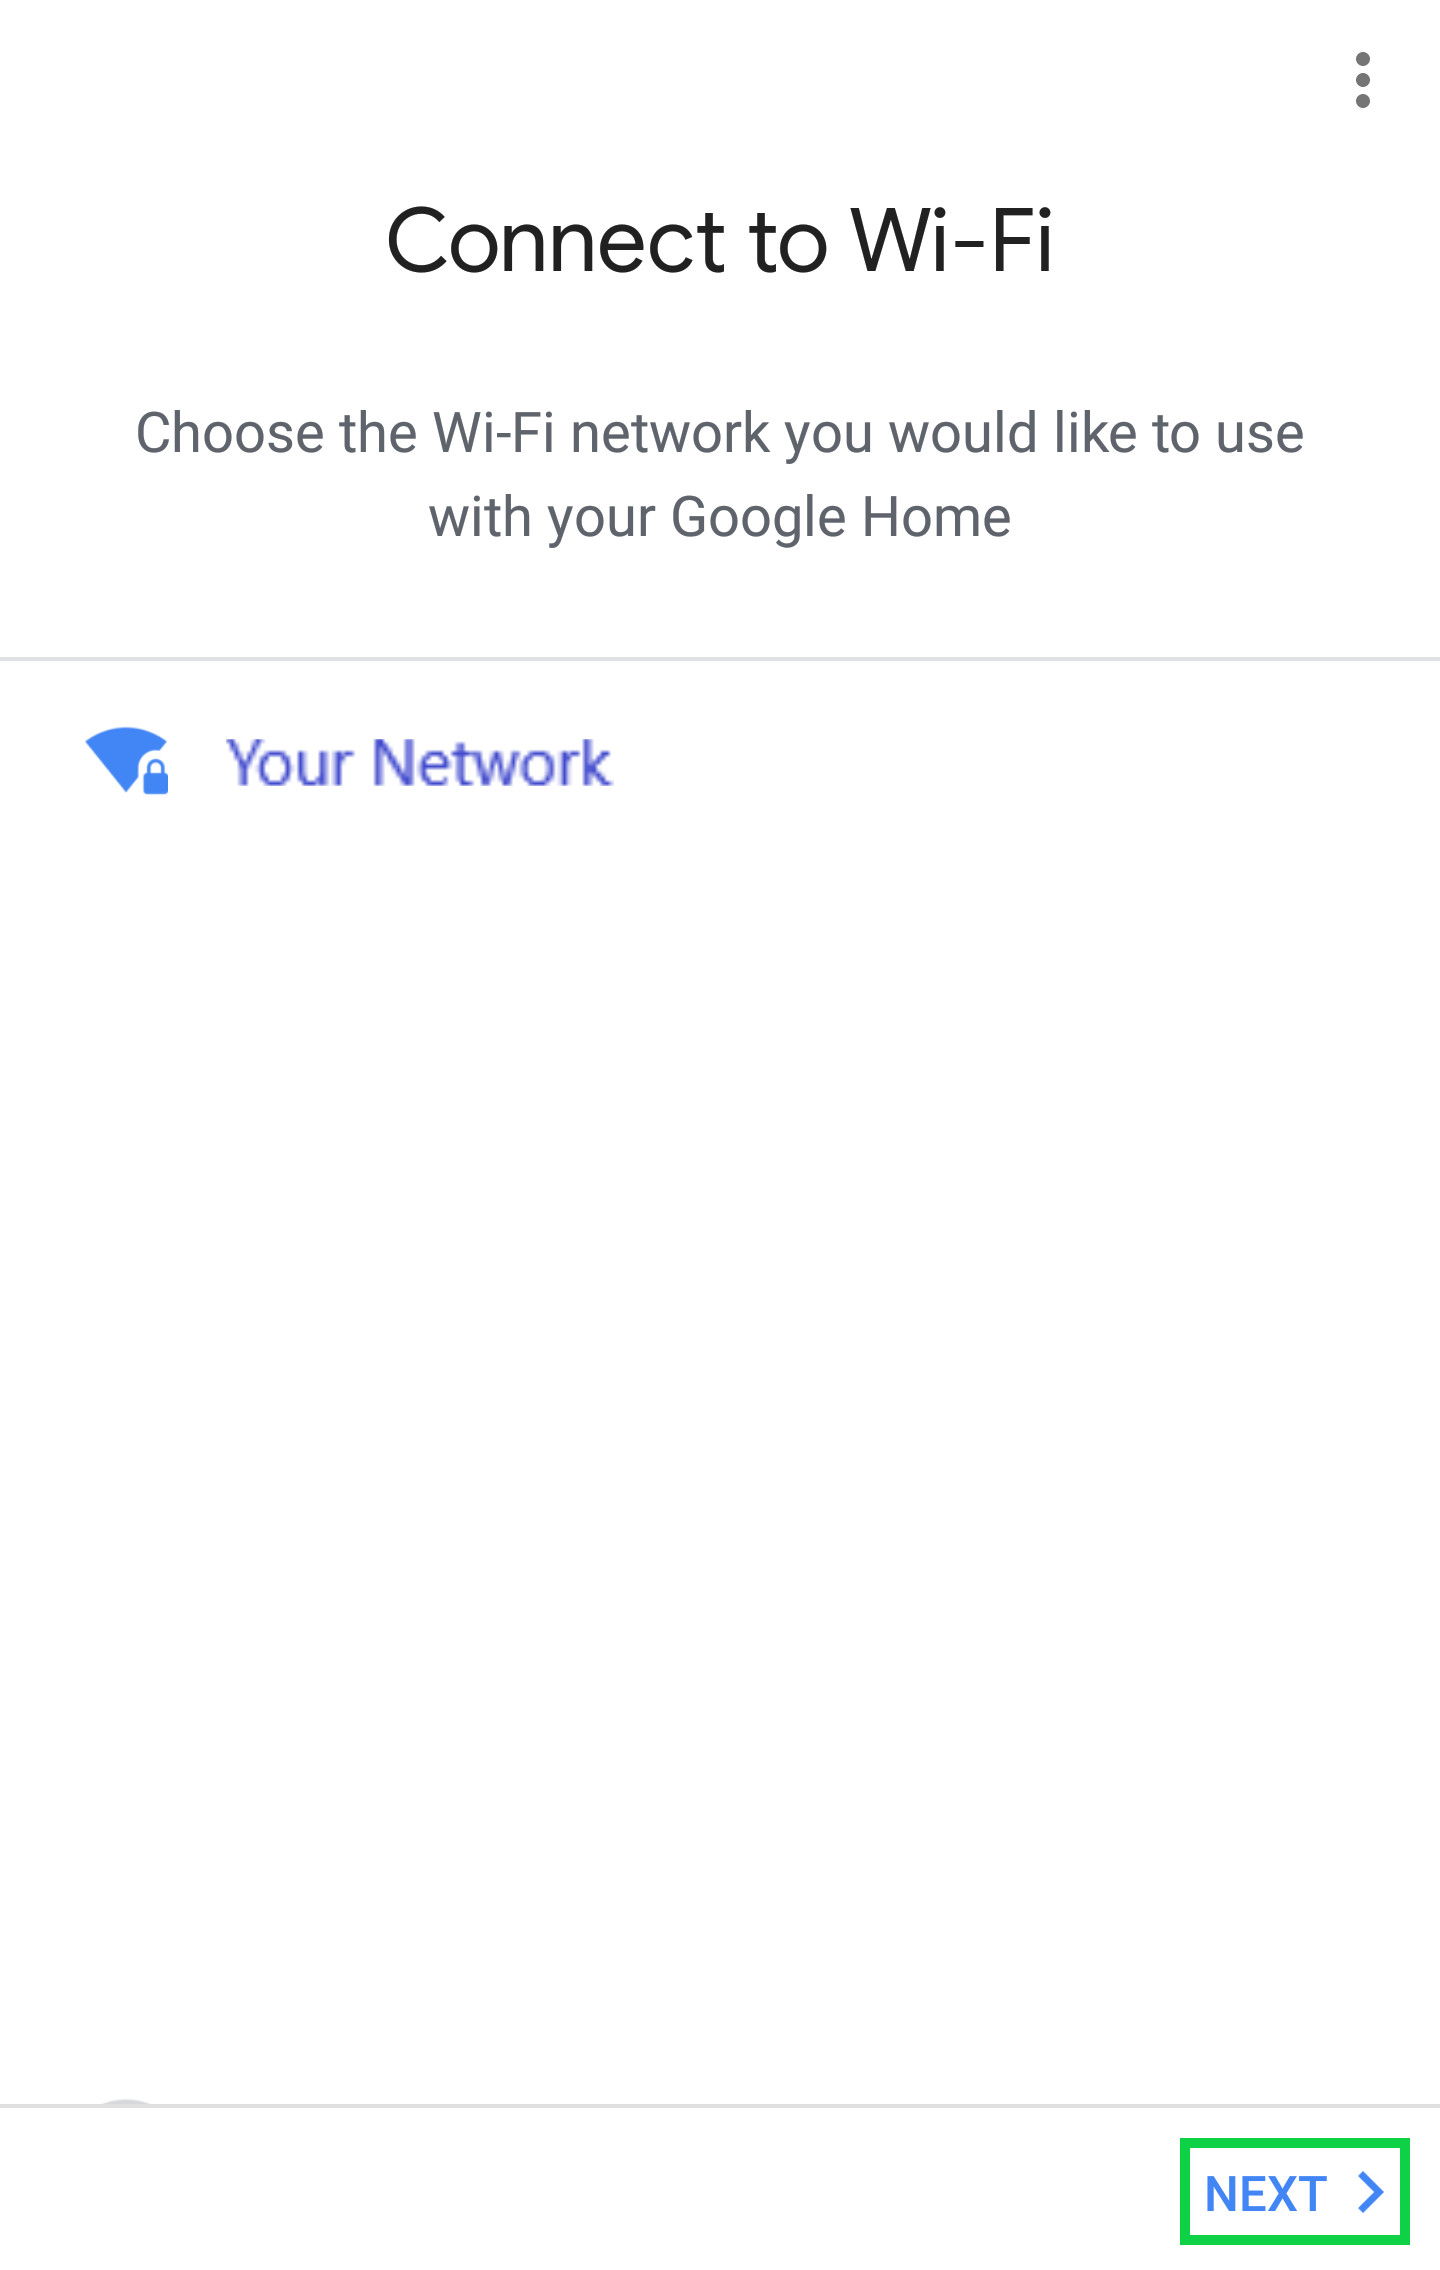 Connect to Wi-Fi page with Next highlighted